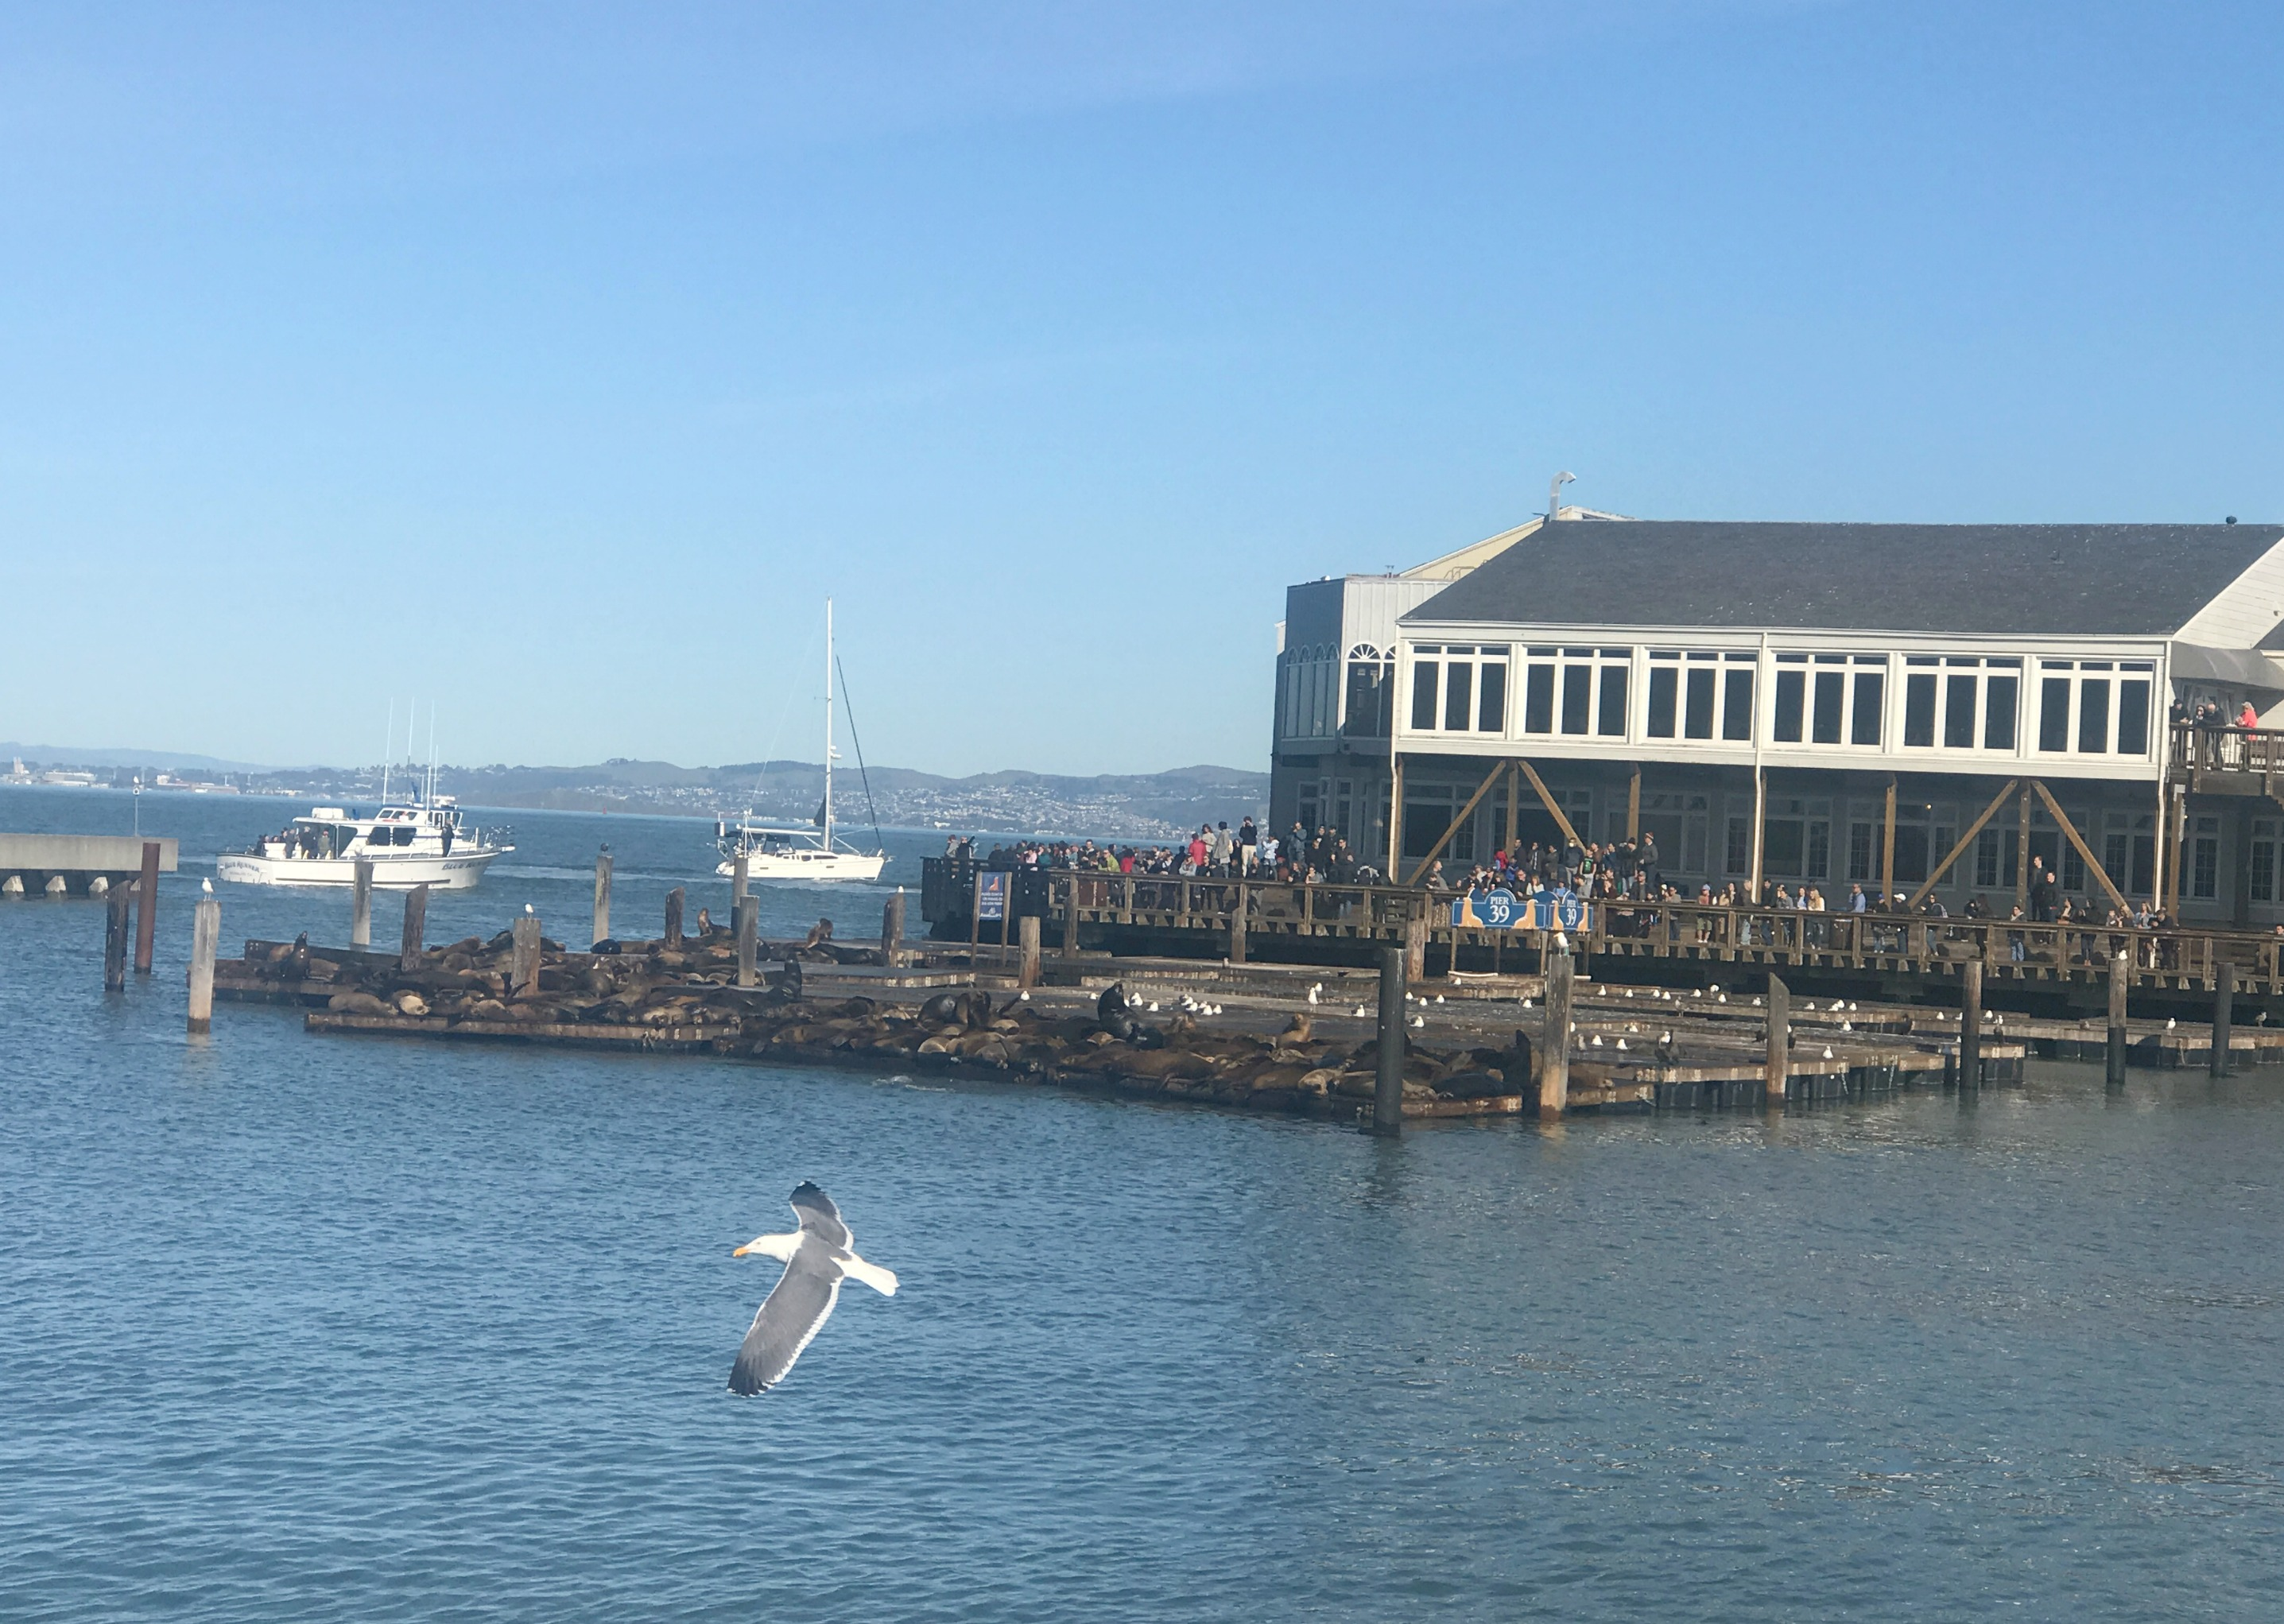 Pier 39 San Francisco, Fisherman's Wharf, Explore San Francisco in One Day